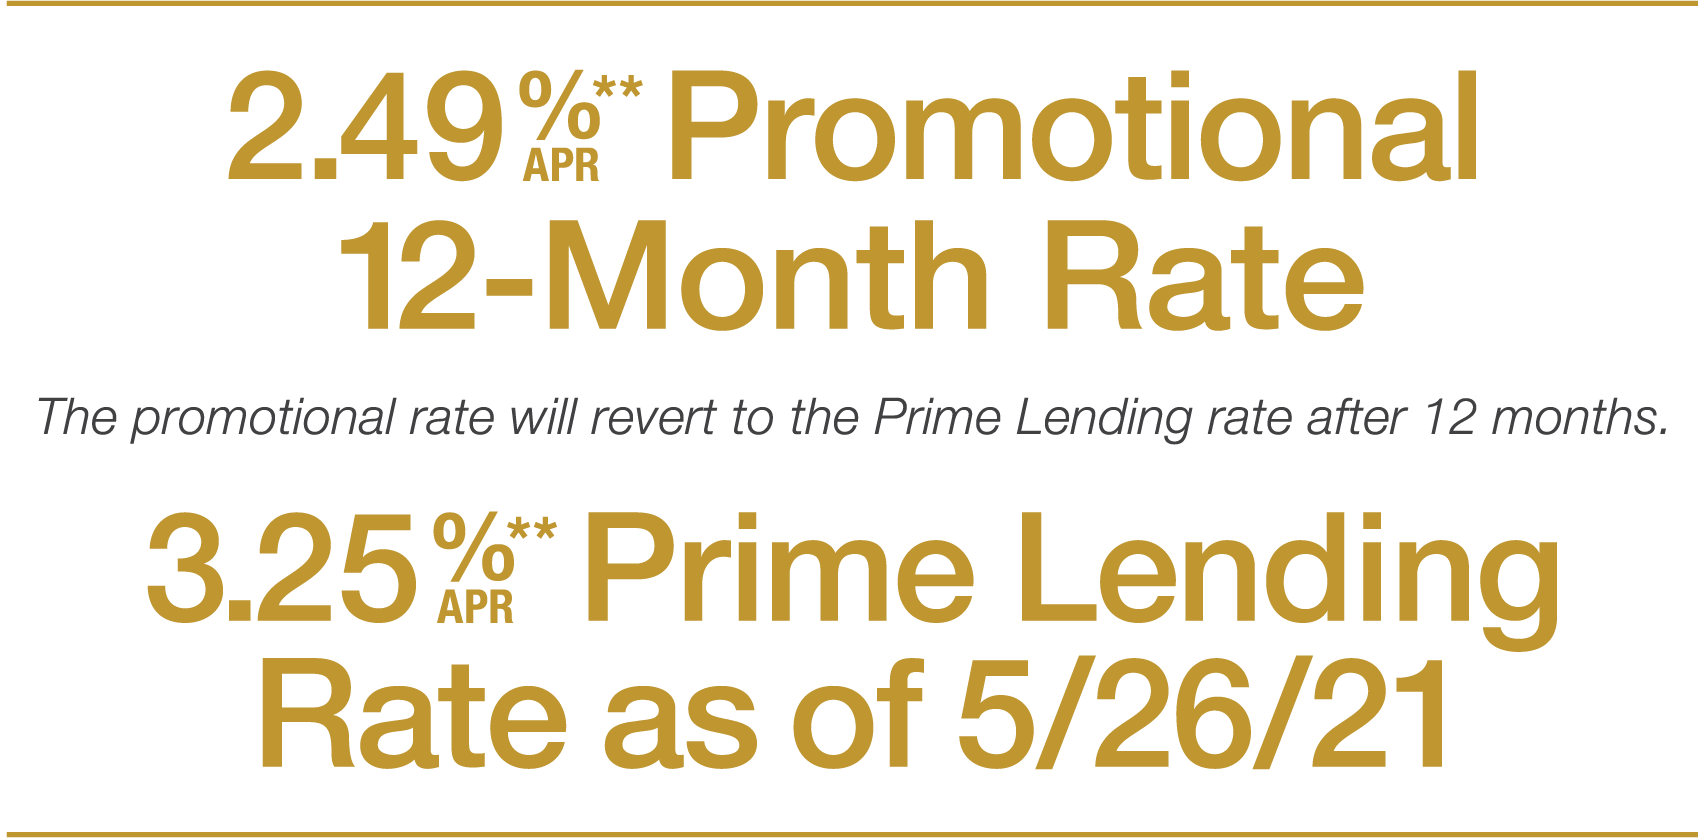 First Merchants Promotional Lending Rates 2Q21